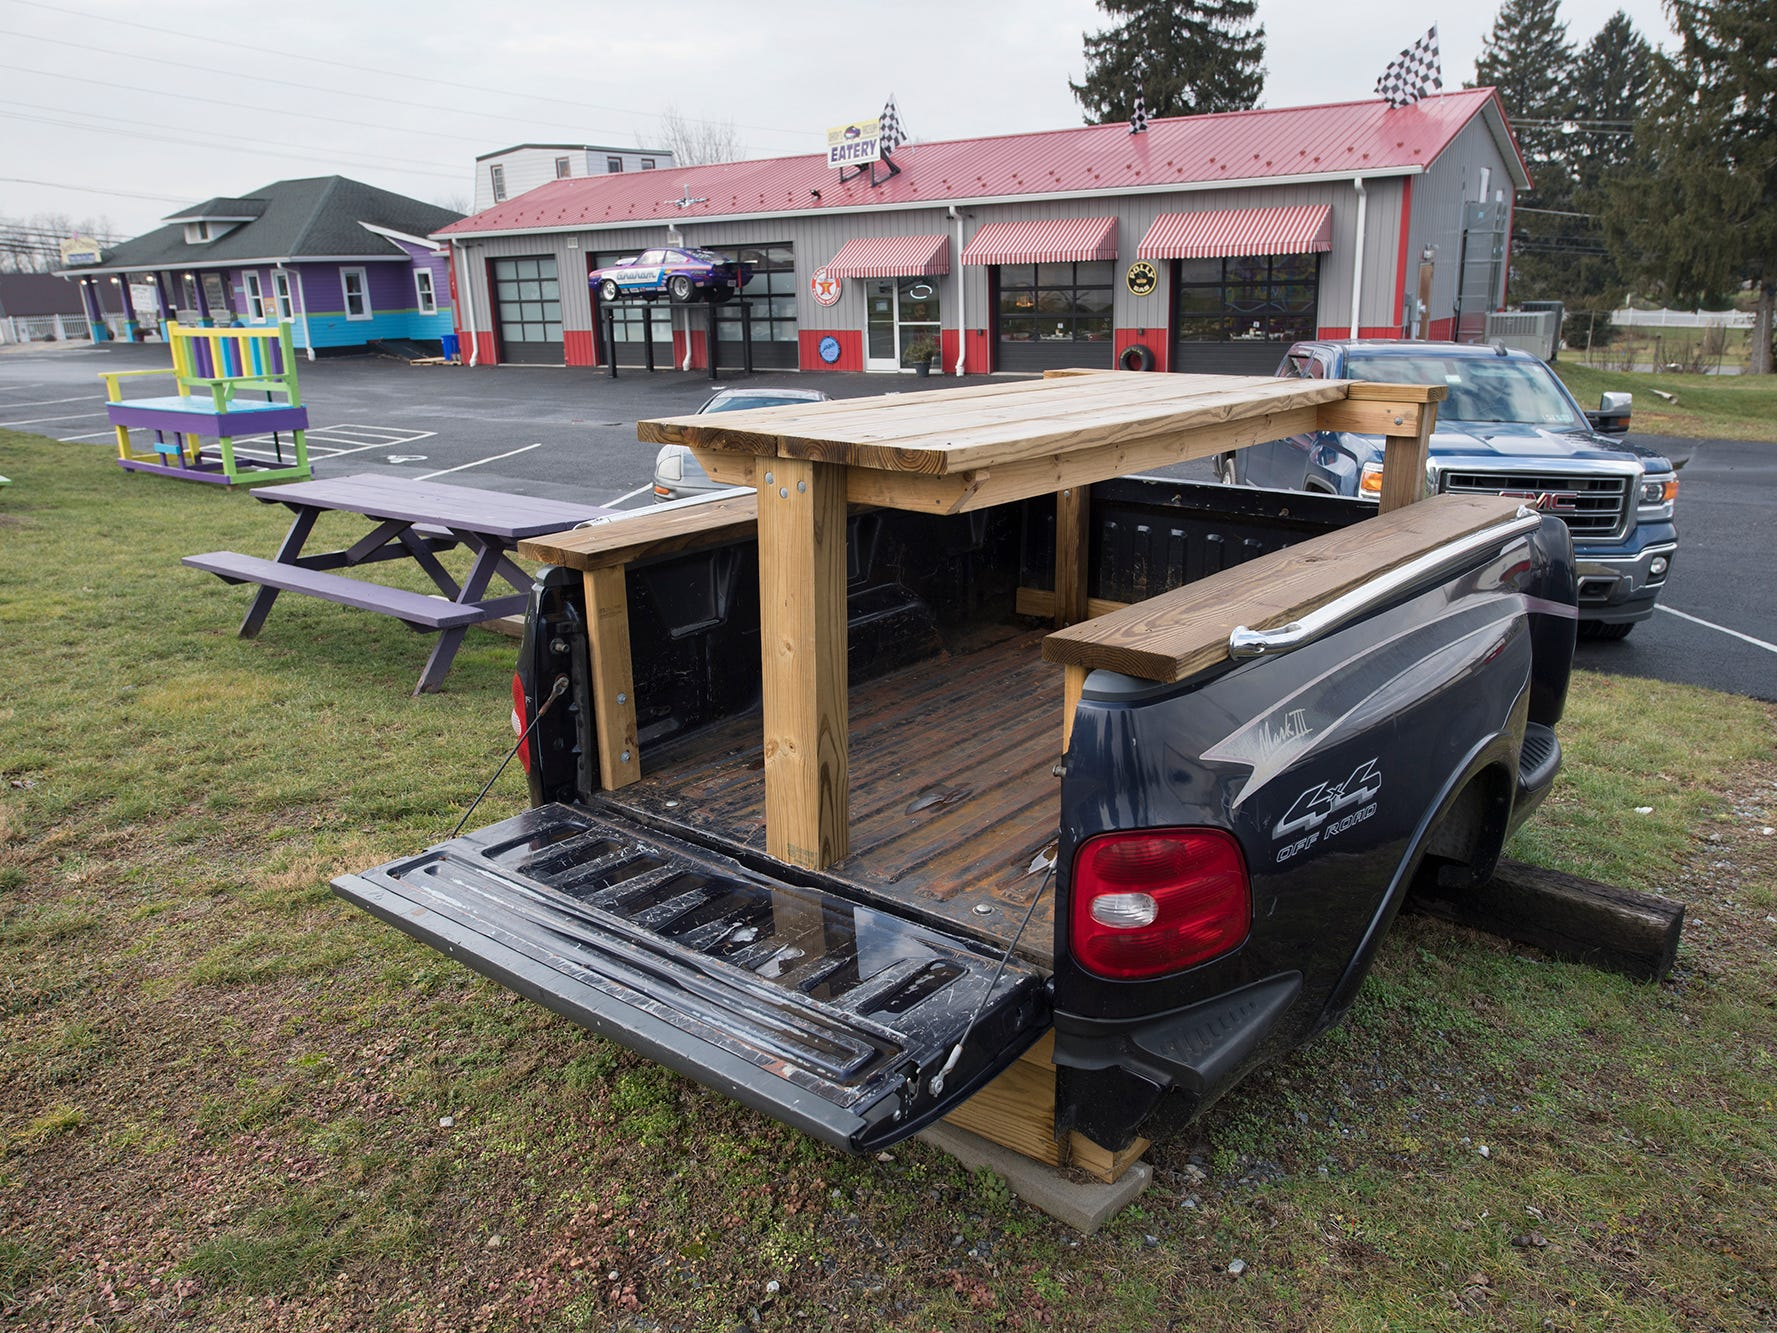 A picnic table made out of a pickup truck bed at Johnny's Raceway Eatery Tuesday January 8, 2019.